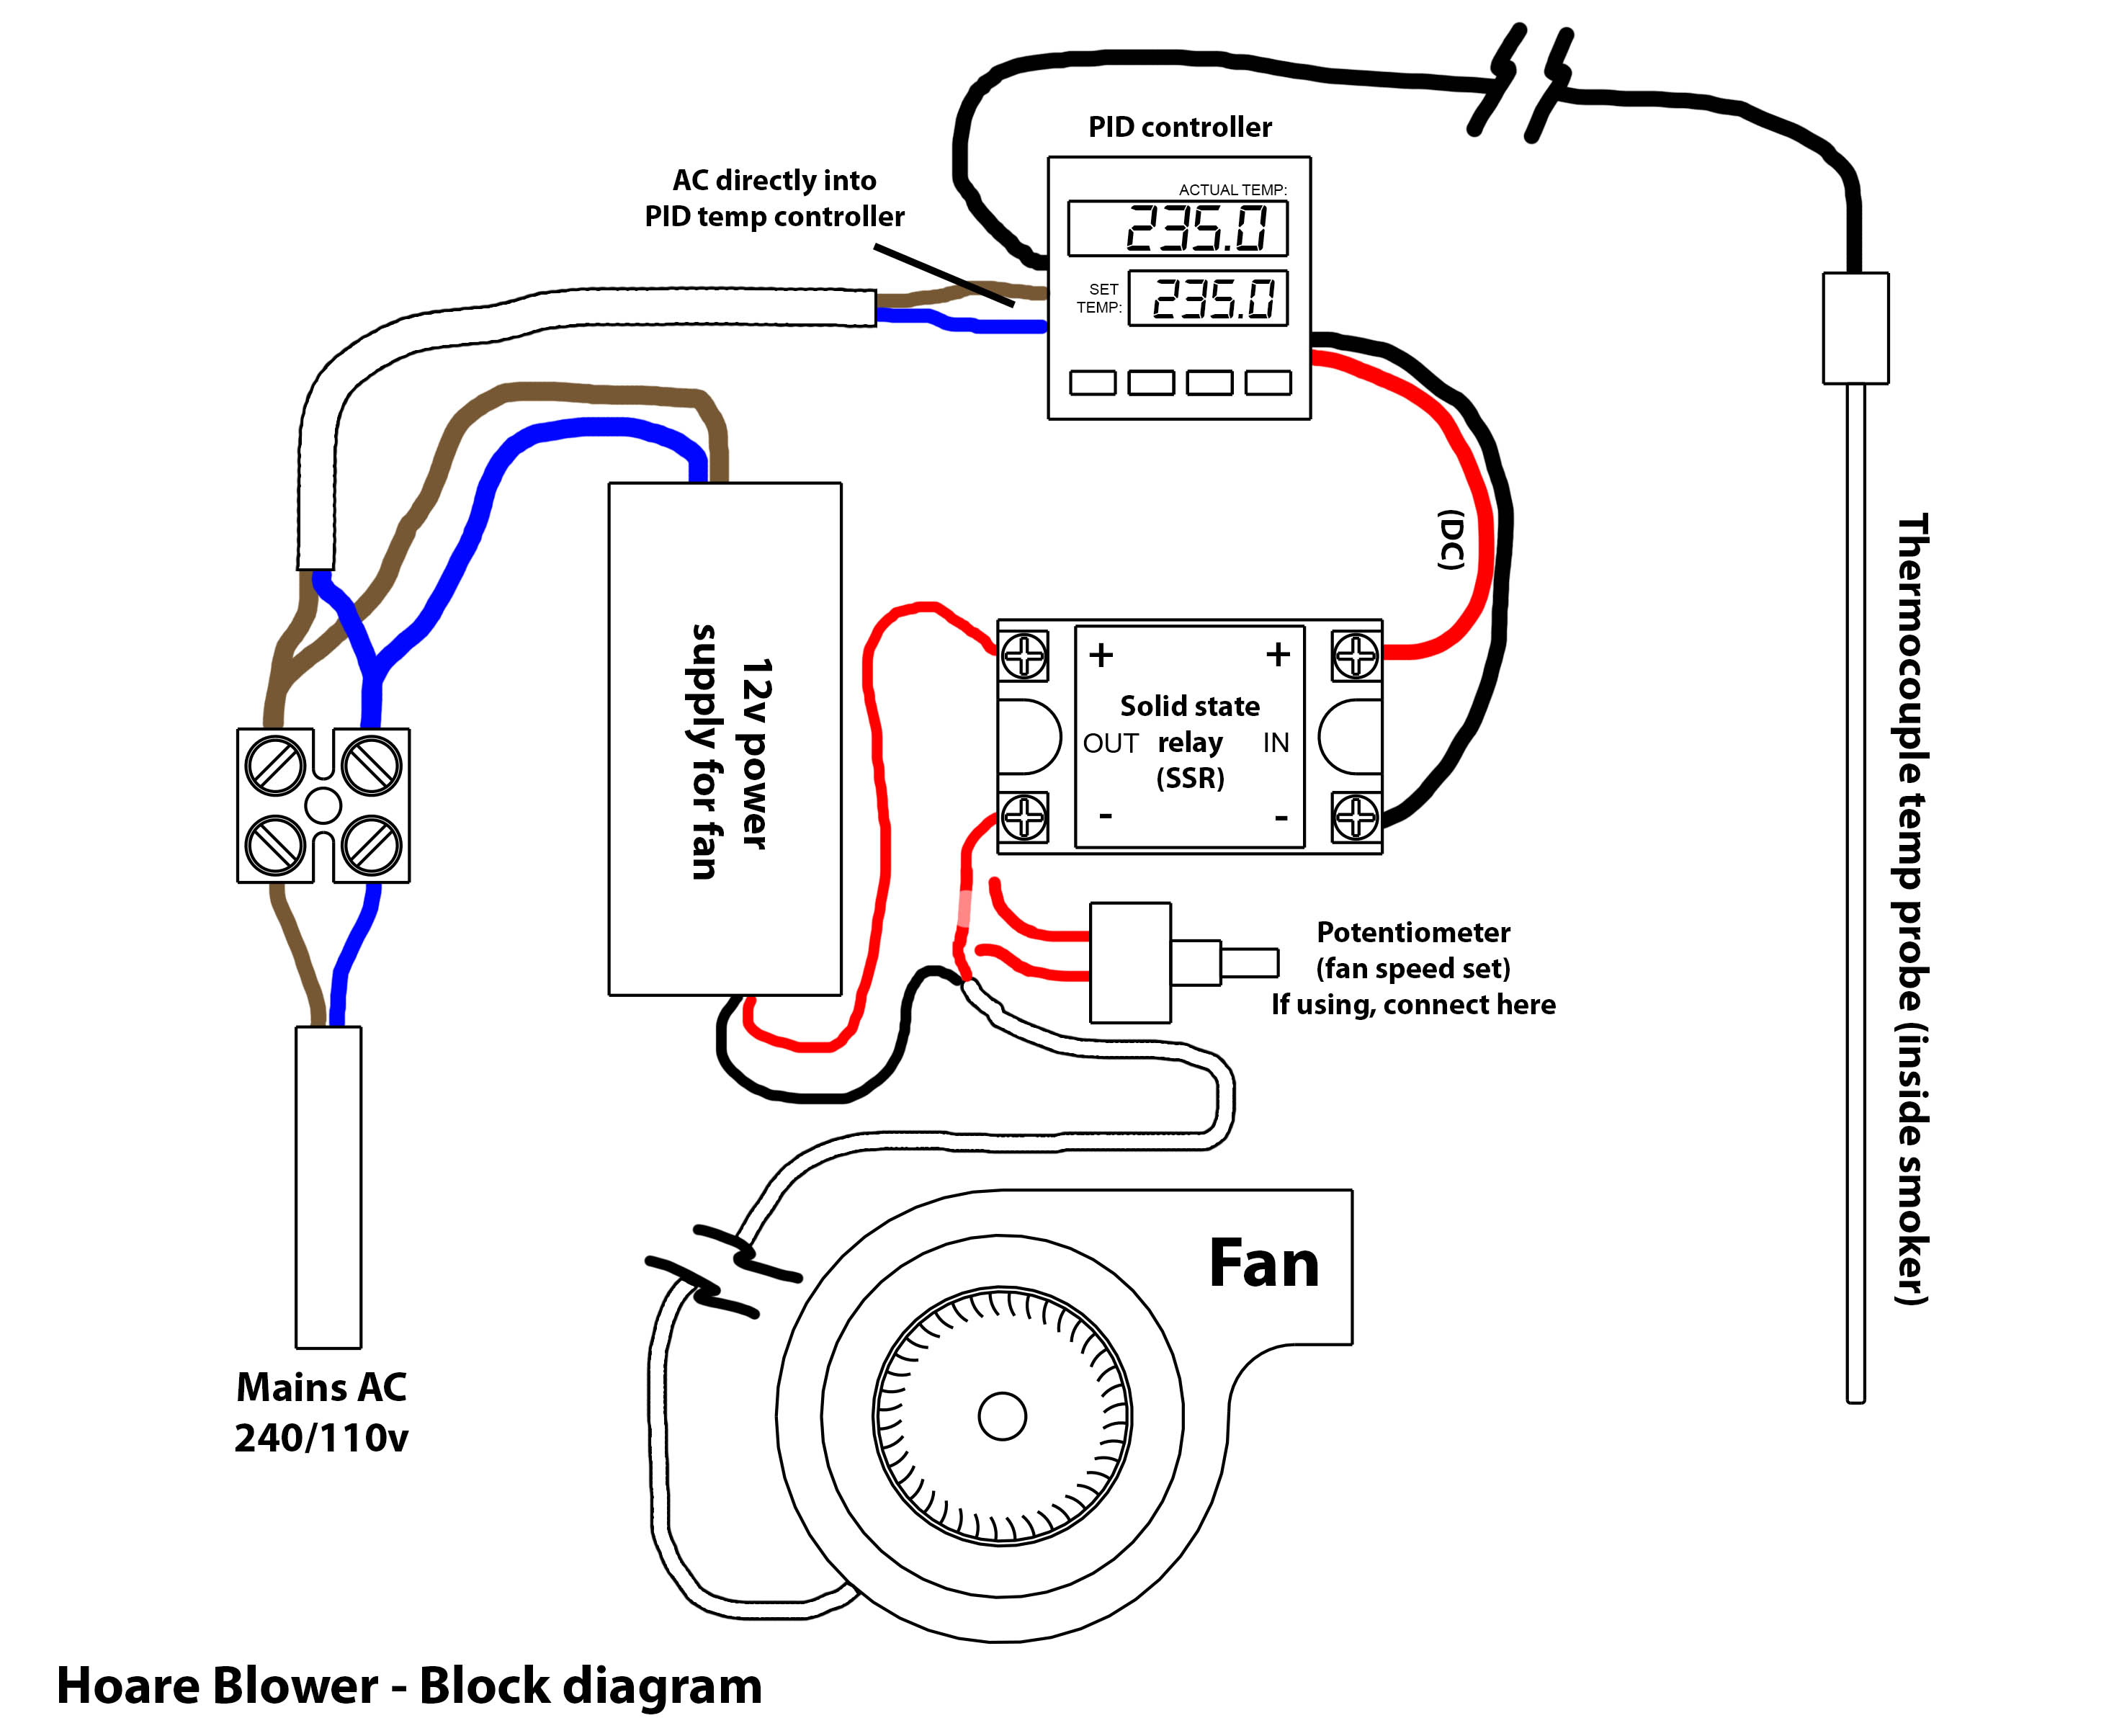 Wiring Manual 12 Volt Potentiometer Wiring Diagram